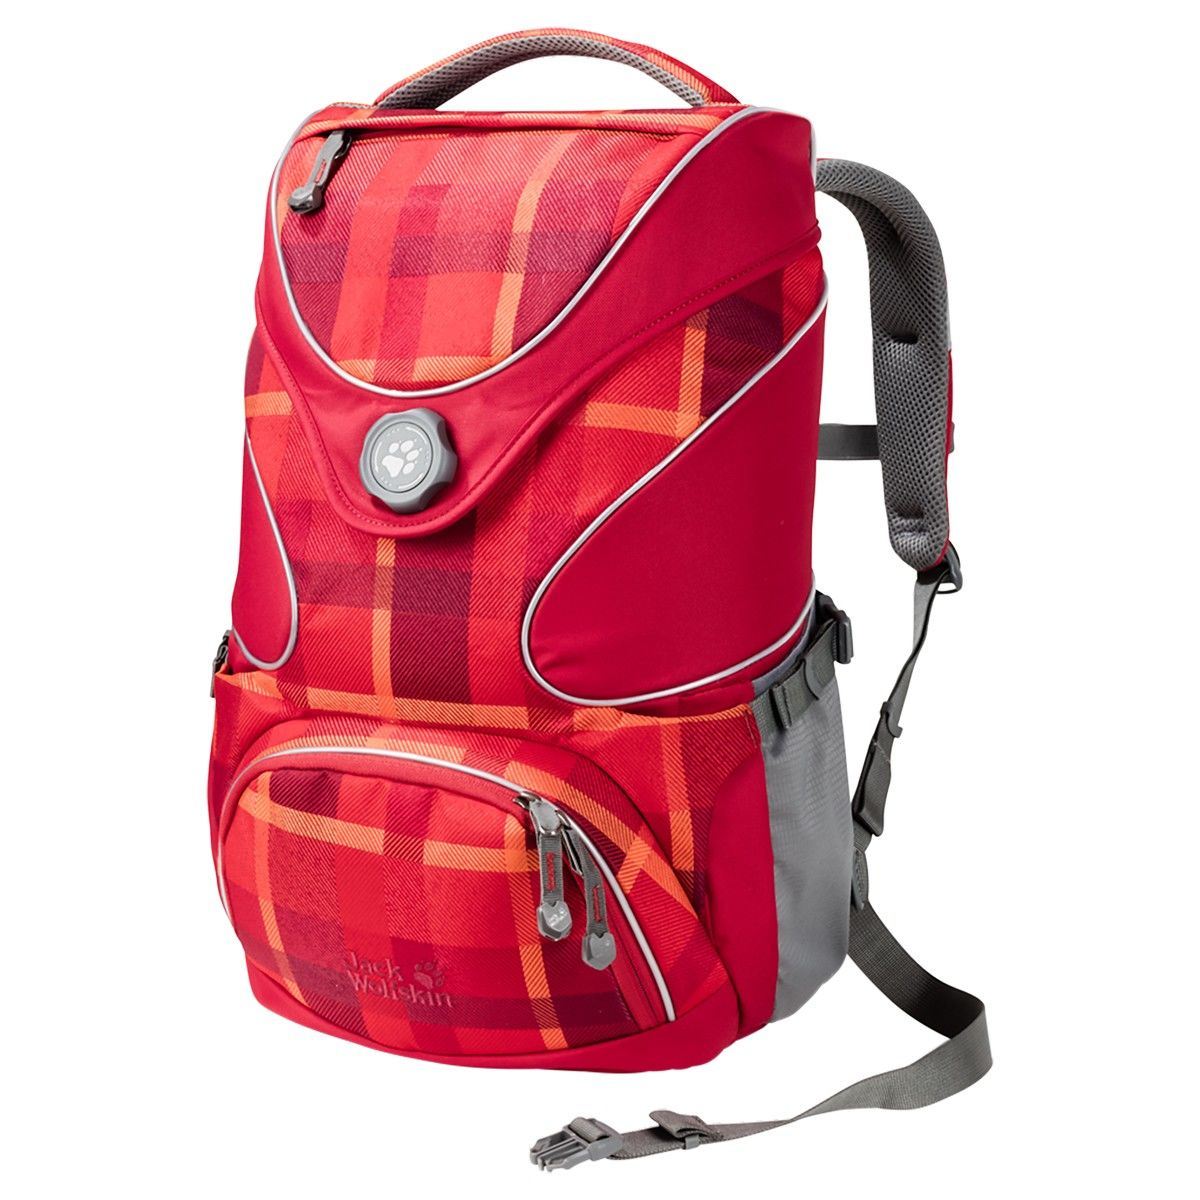 Jack Wolfskin Ramson Top 20 Pack Rot, 20l -Farbe Indian Red Woven Check, 20l